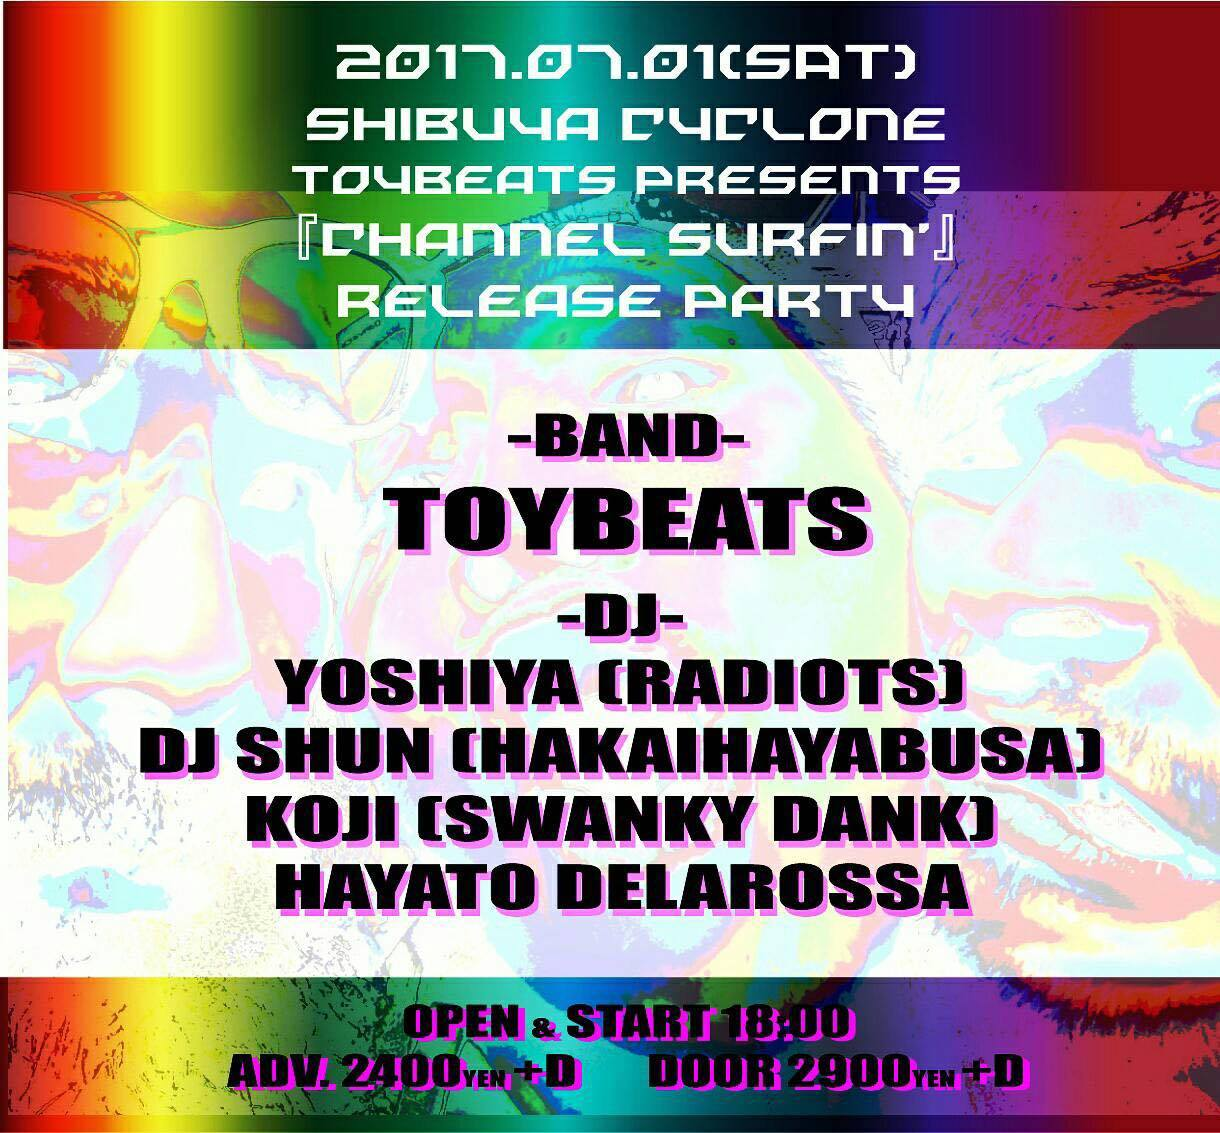 2017/07/01(sat) SHIBUYA CYCLONE TOYBEATS 『CHANNEL SURFIN'』 RELEASE PARTY